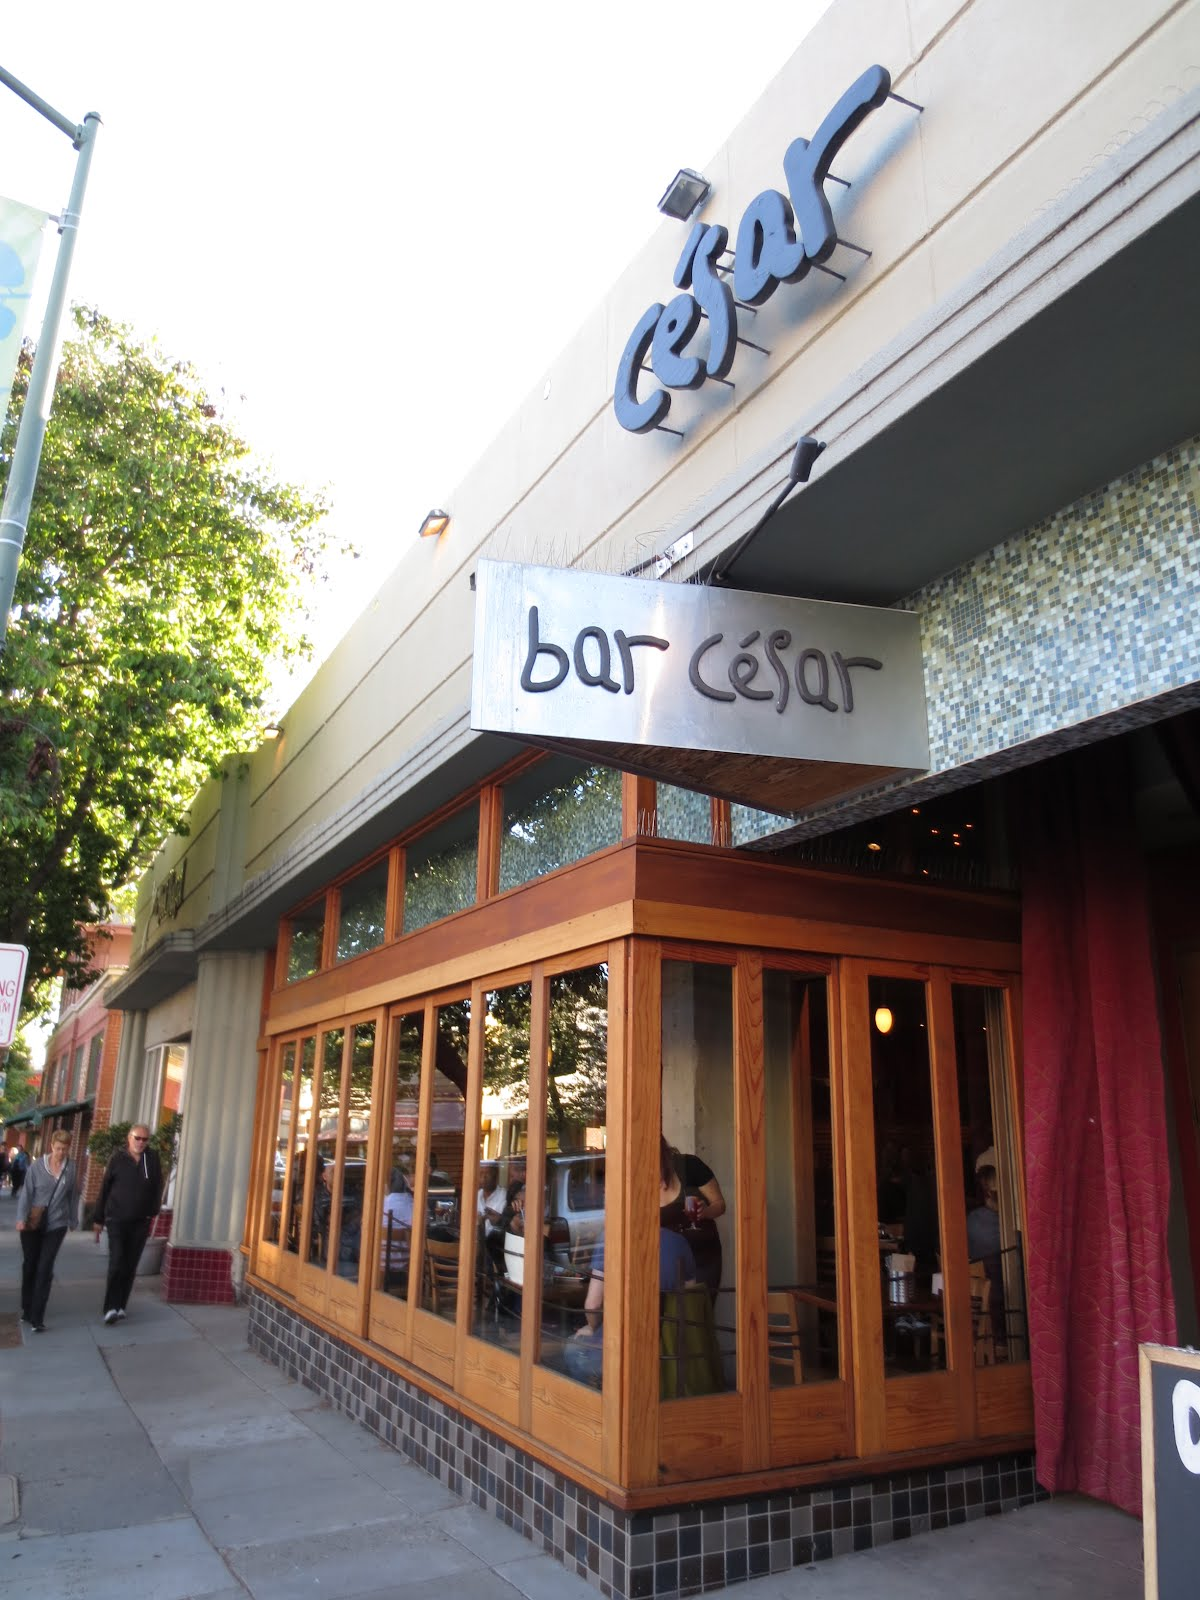 Bar c sar oakland localwiki for Food bar oakland